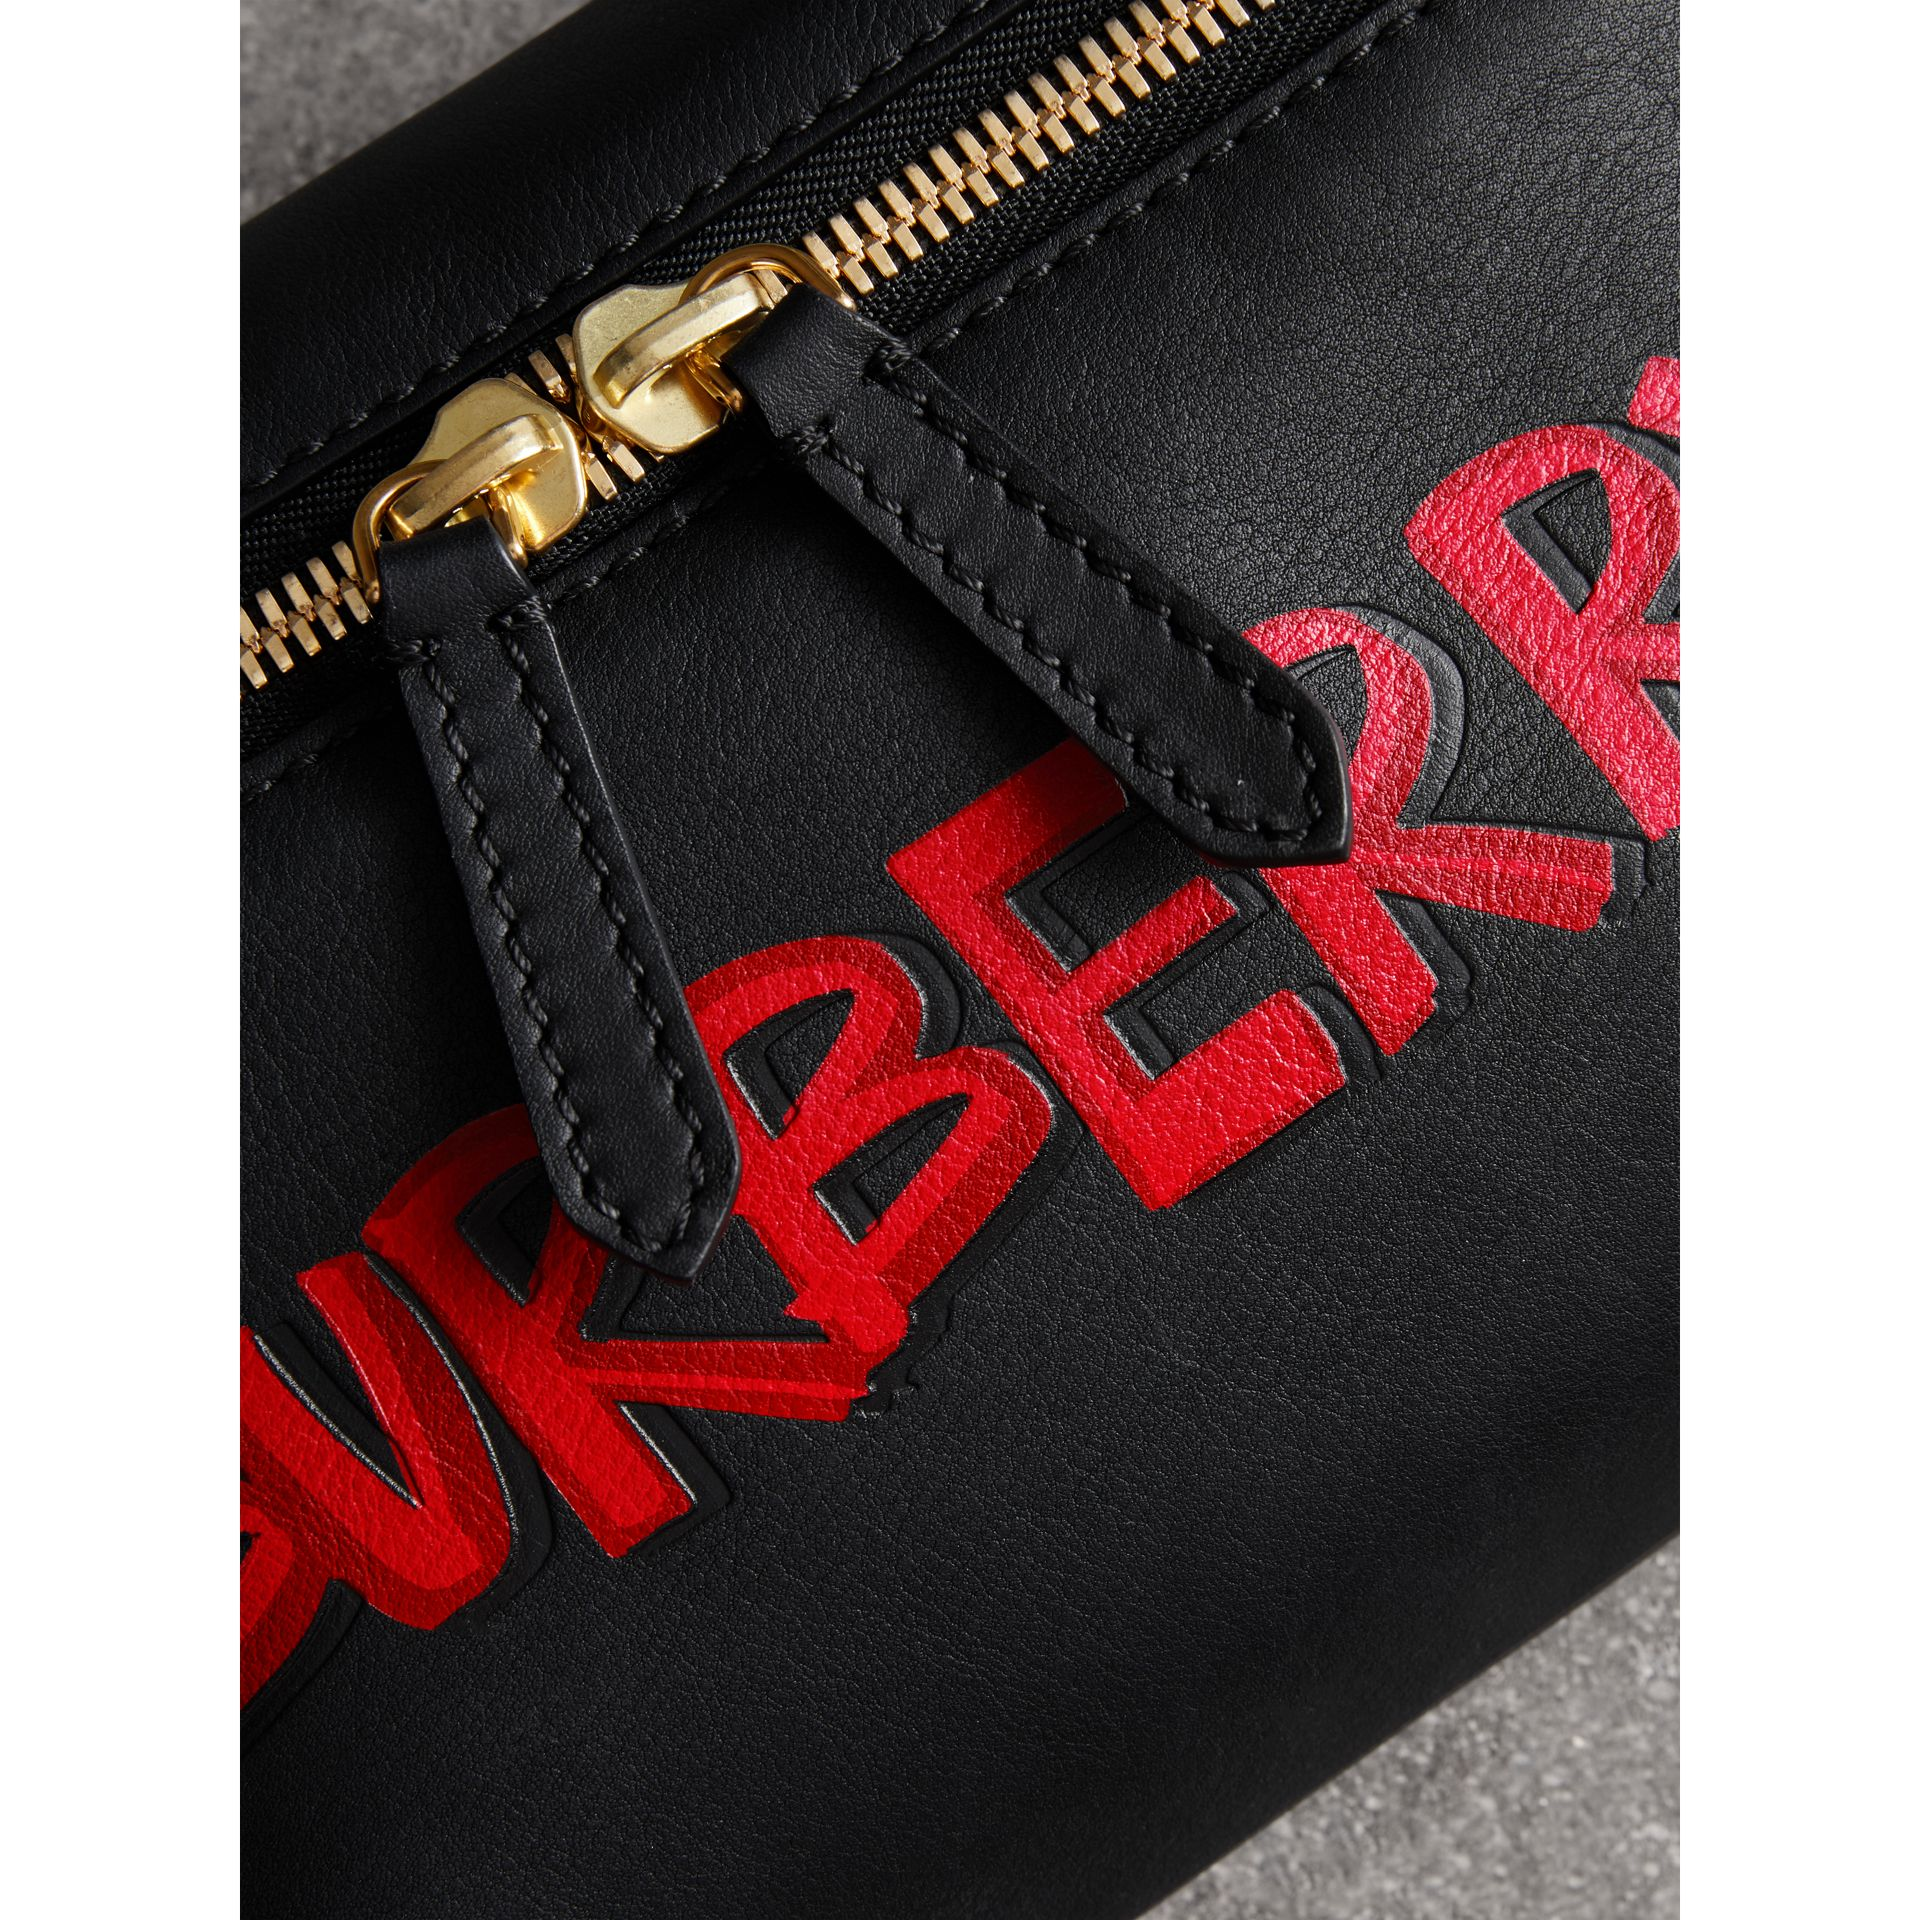 Medium Graffiti Print Leather Bum Bag in Black - Men | Burberry Canada - gallery image 1